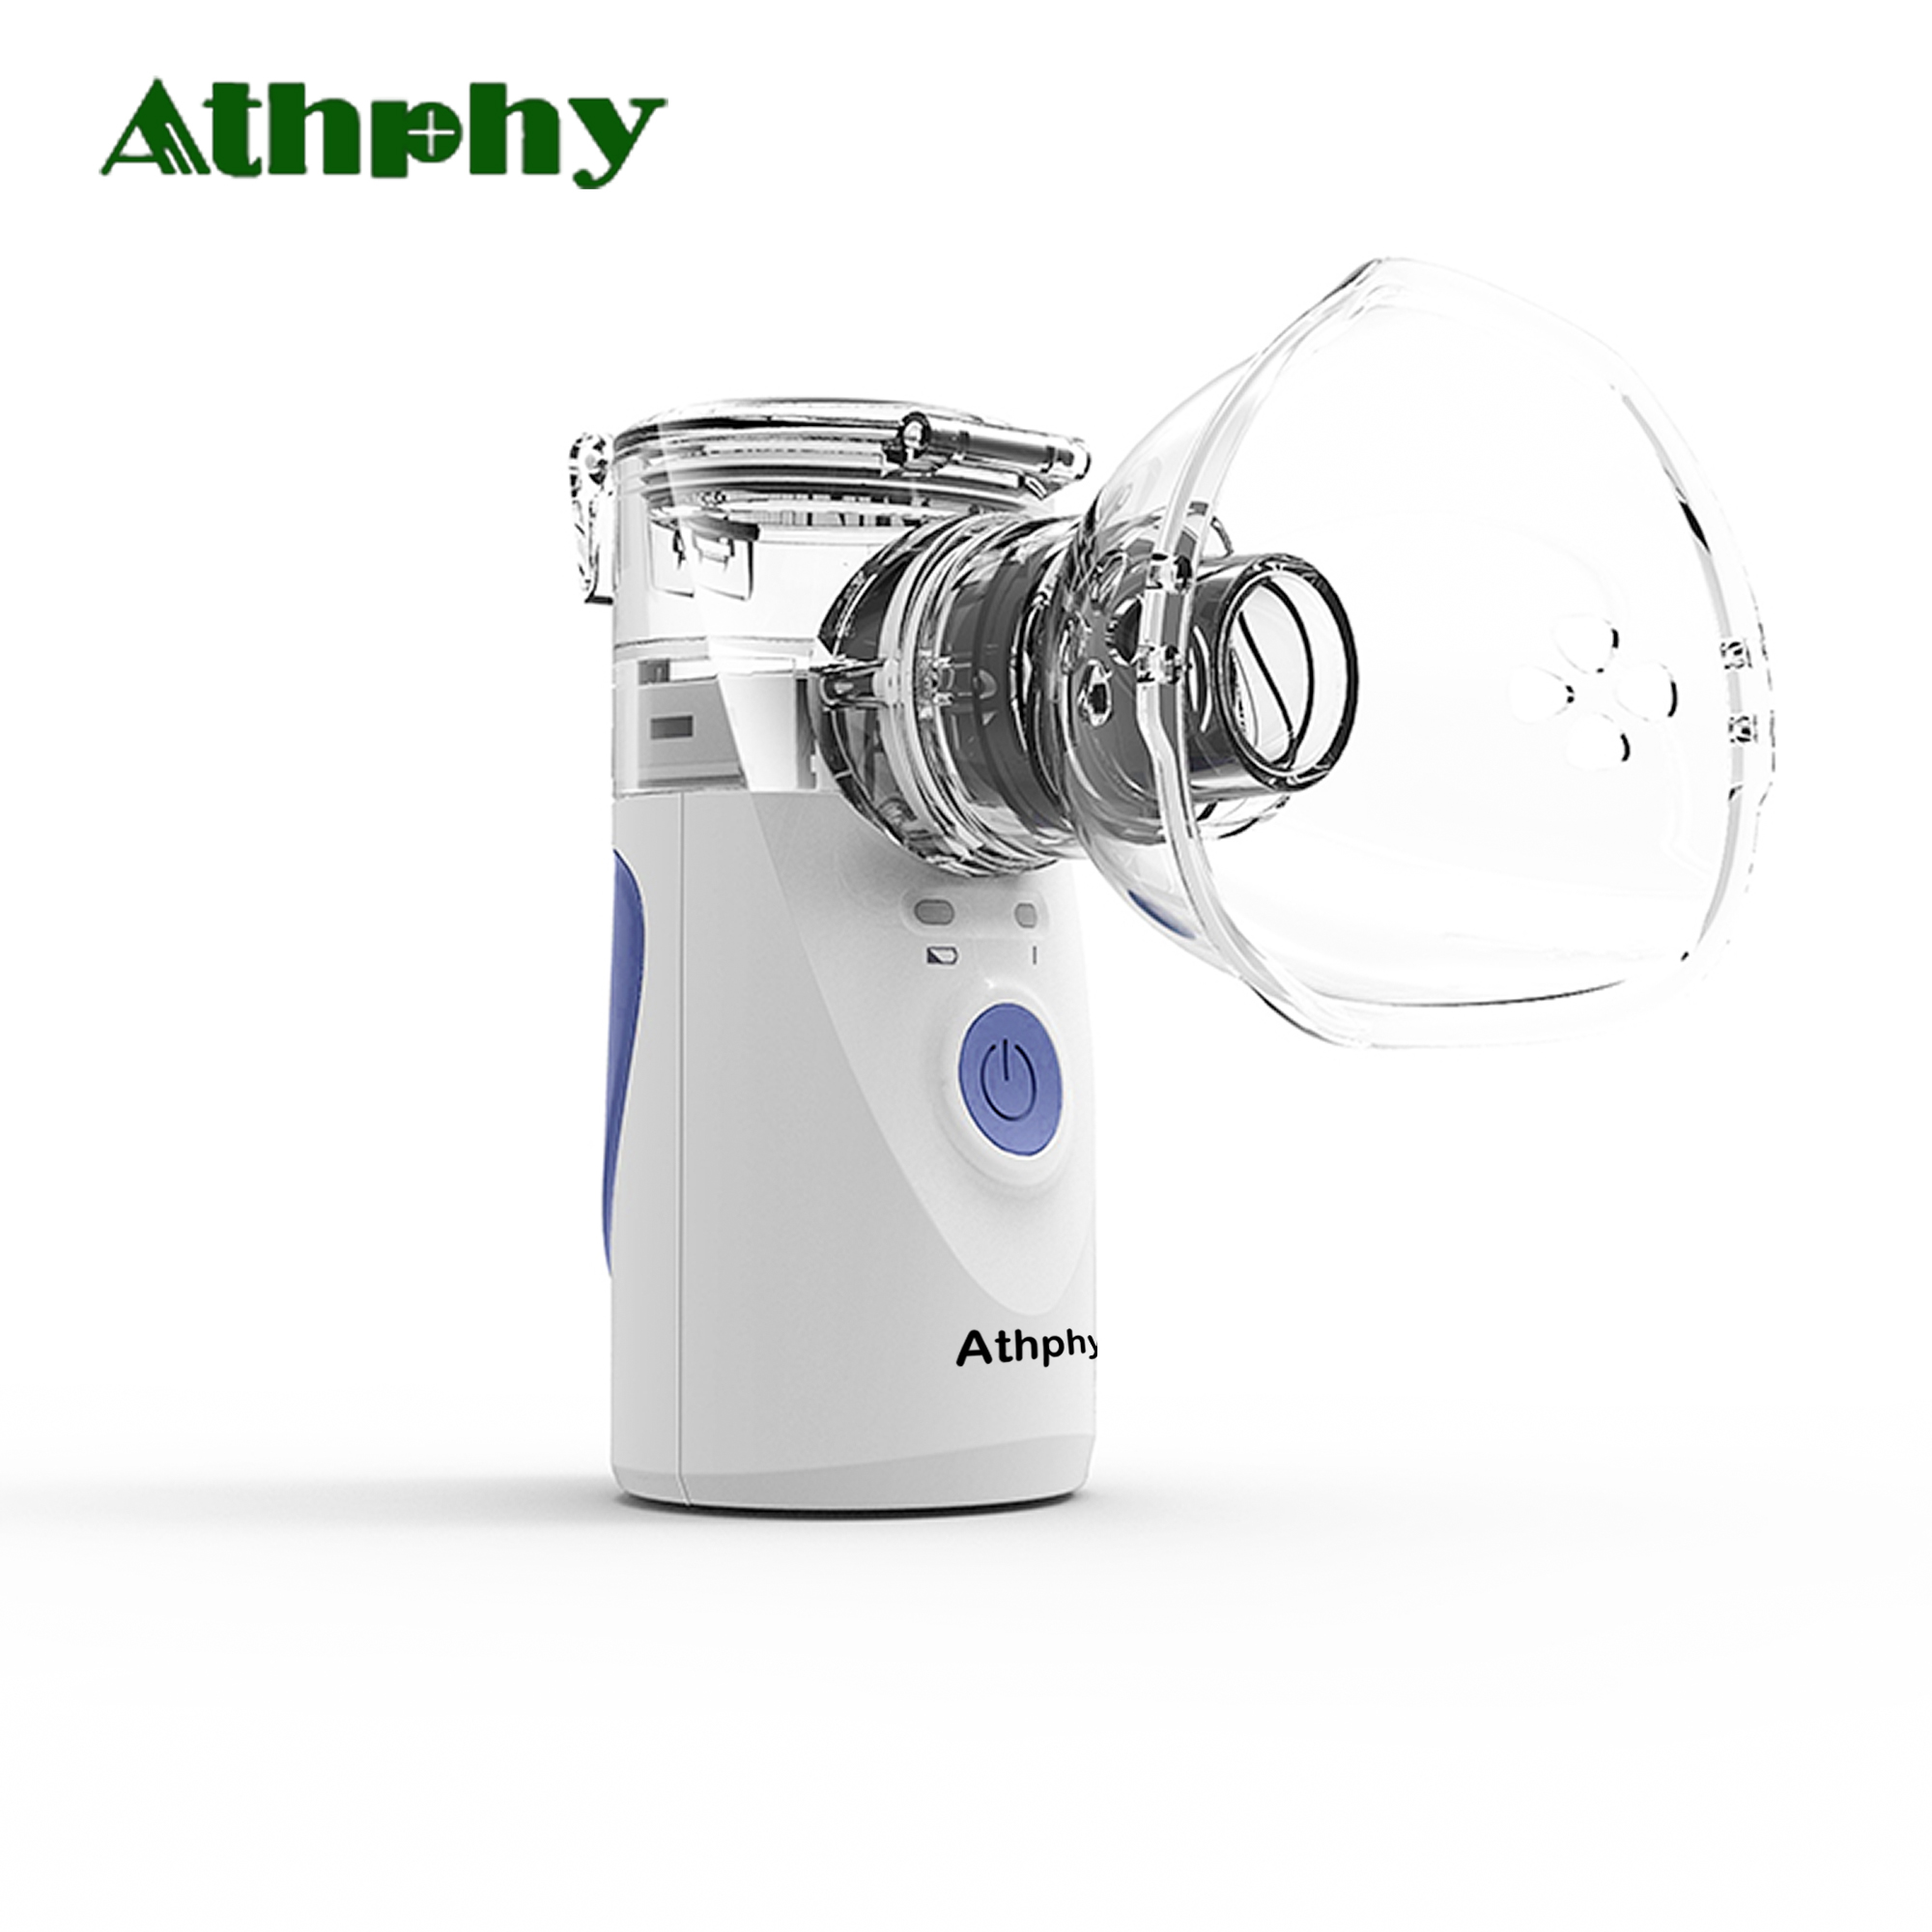 Athphy Ultrasonic Nebulizer Inhaler Handheld Portable Baby Children Adult Mini Atomizer Respirator Silent Household Humidifier